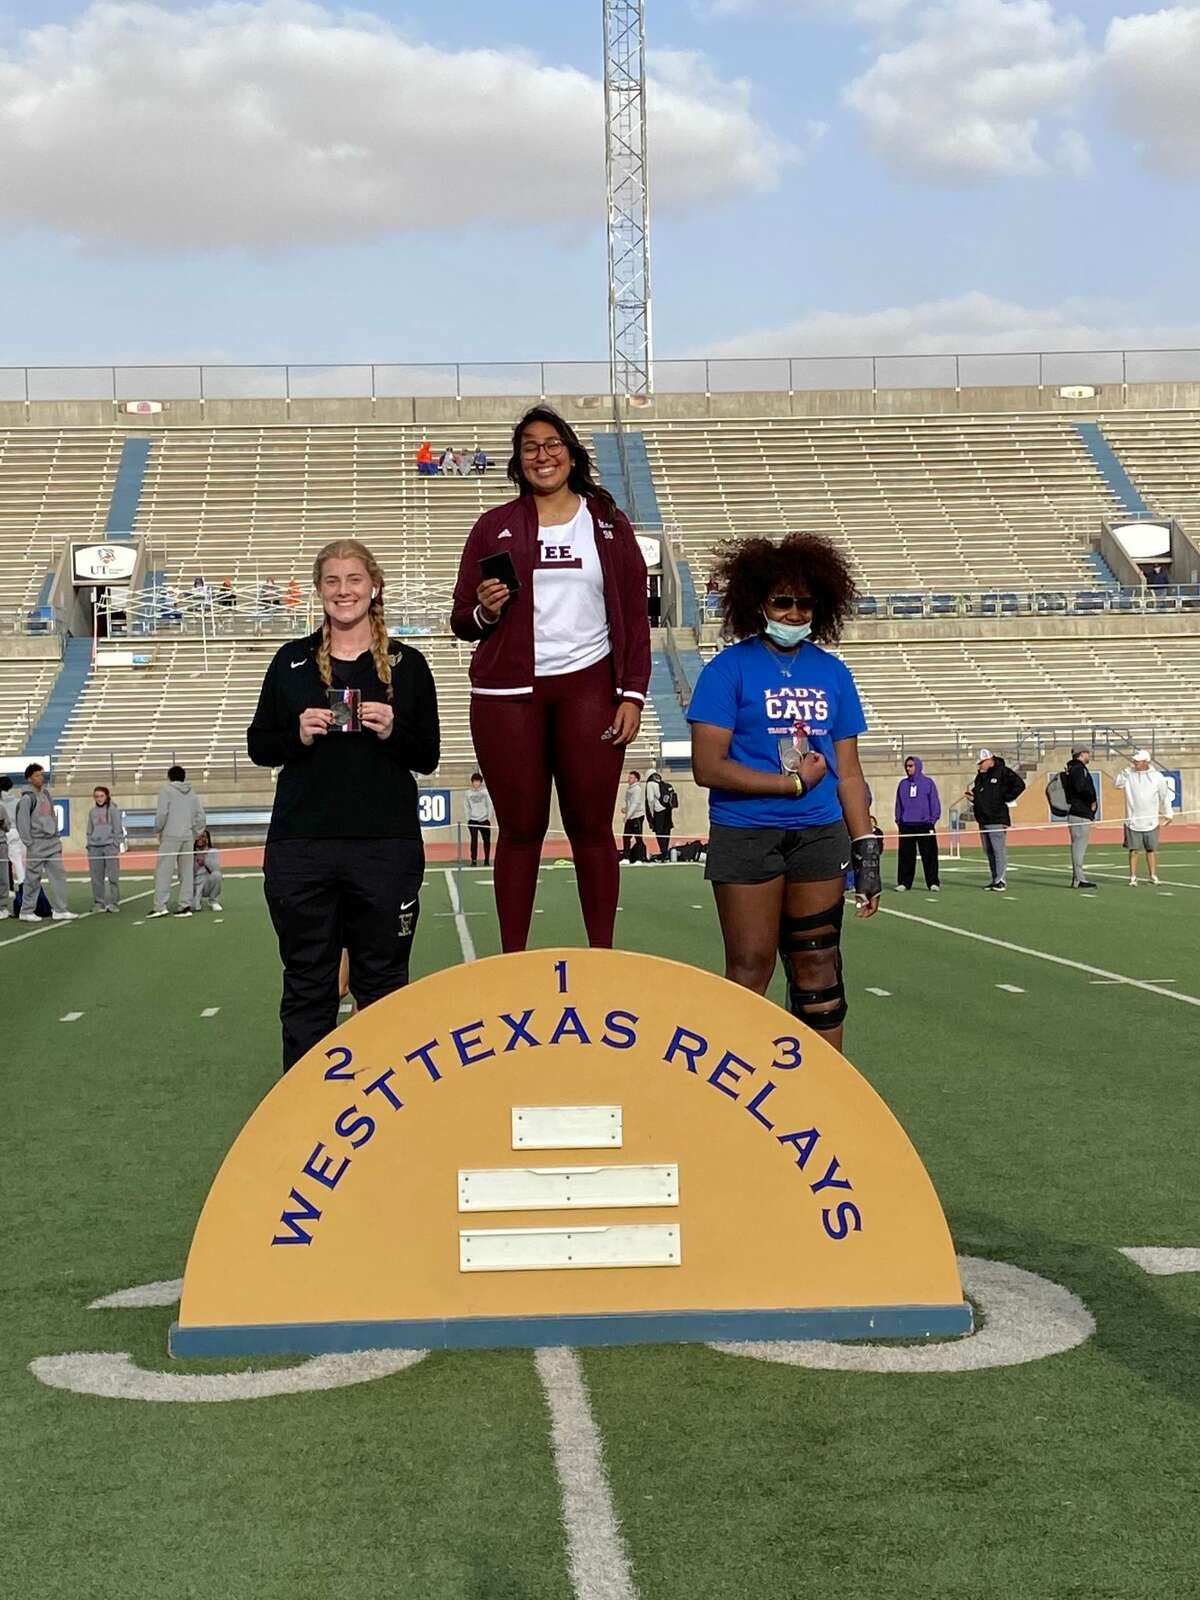 Lee thrower Leah Acosta stands atop the podium after winning gold in the shot put at the West Texas Relays on March 5 in Odessa. Andrews' Emily Burgen placed second.